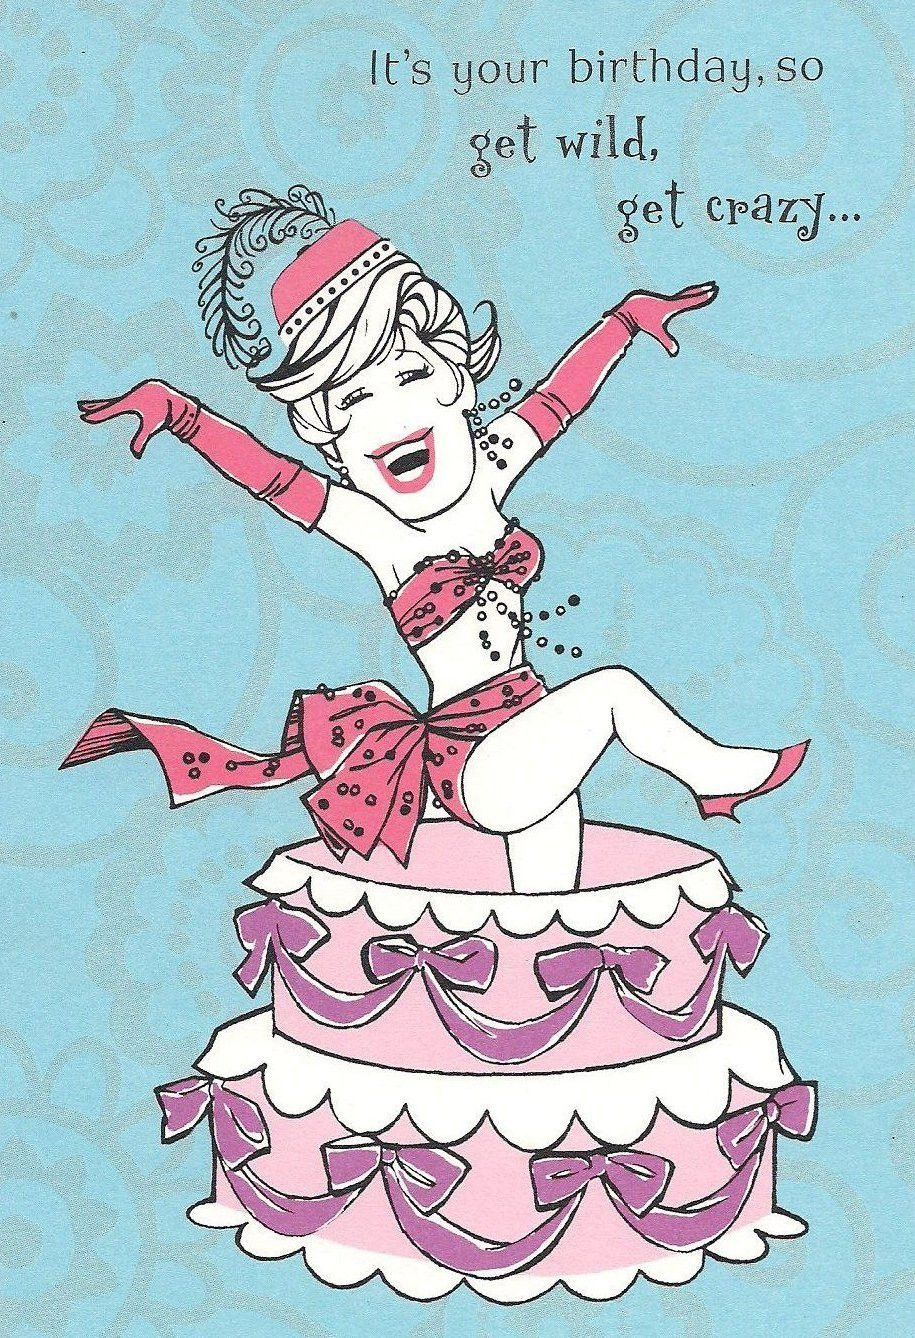 Sexy lady show girl pops out of cake birthday greeting card sexy lady show girl pops out of cake birthday greeting card hallmark kristyandbryce Gallery